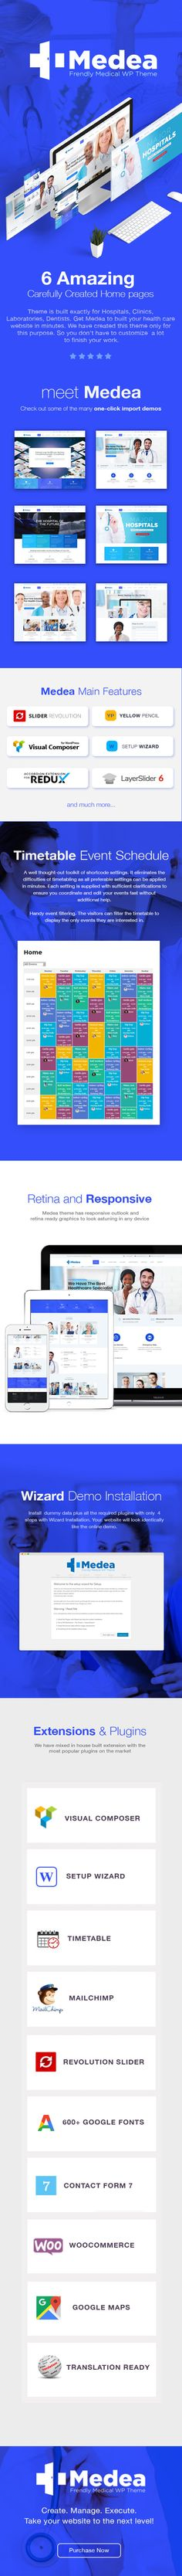 Medea - Multipurpose Health and Medical Theme by THEMEPLE | ThemeForest